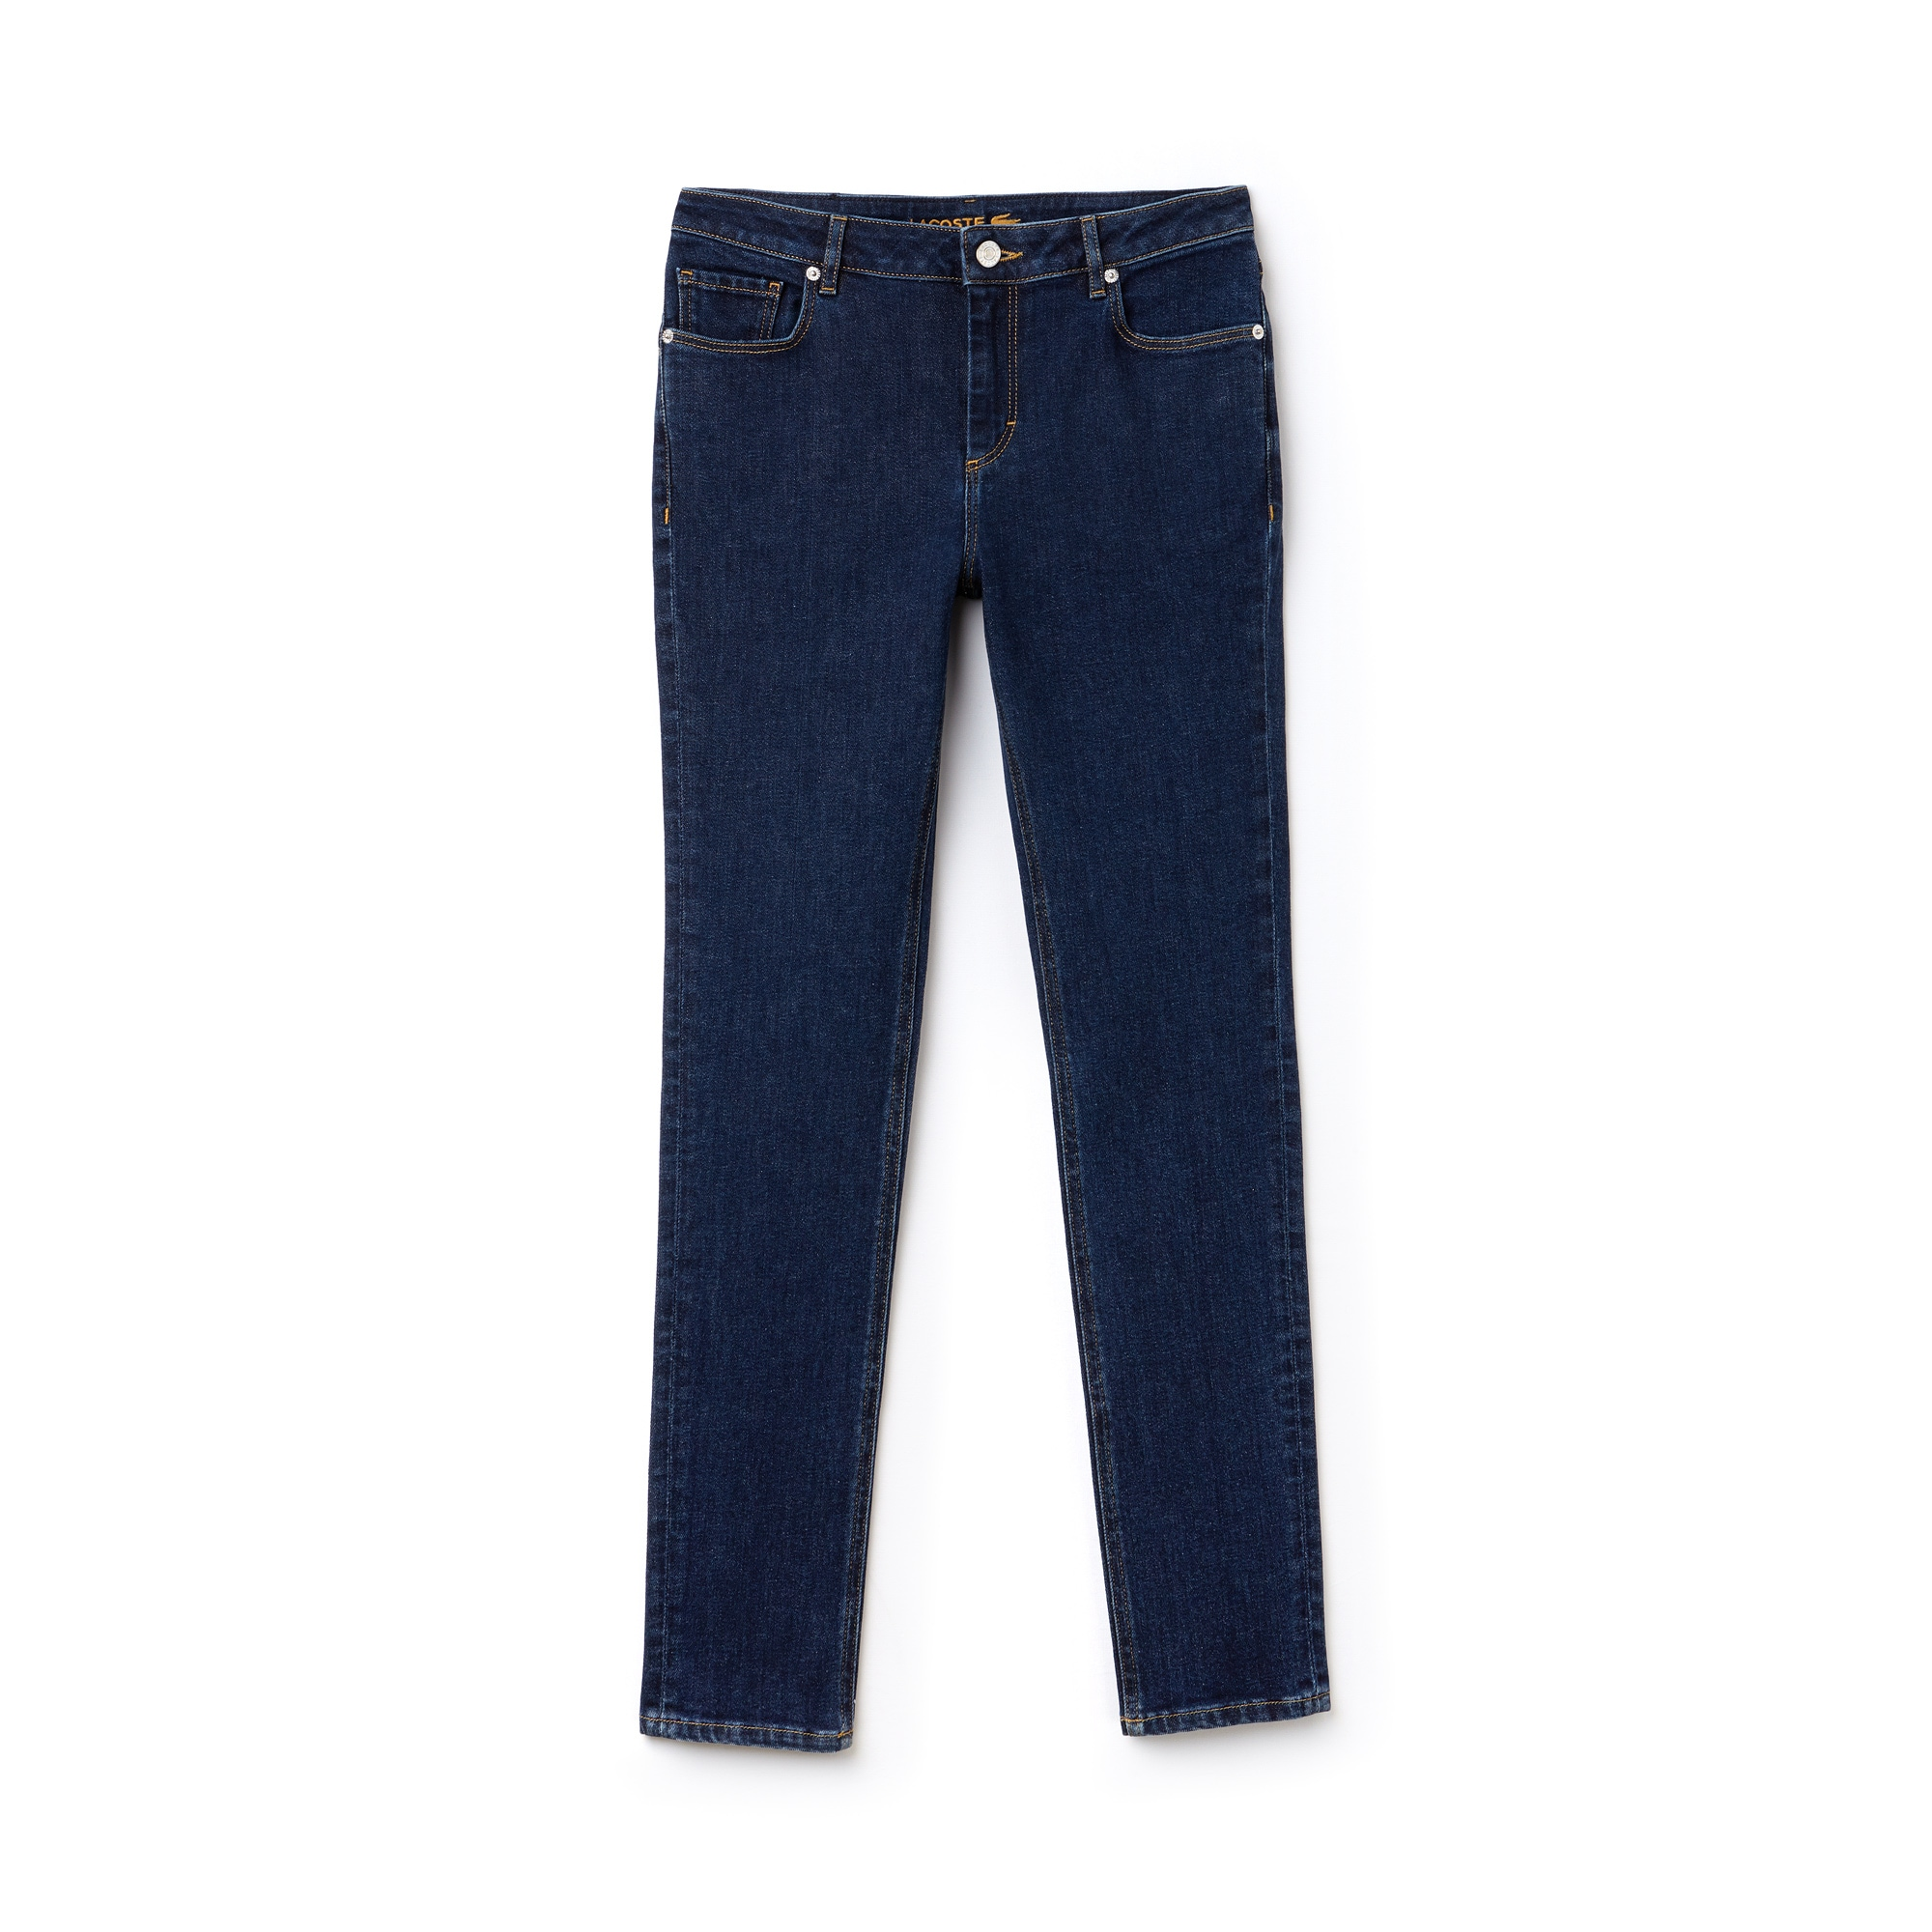 Women's Slim Fit Stretch Cotton Denim Jeans